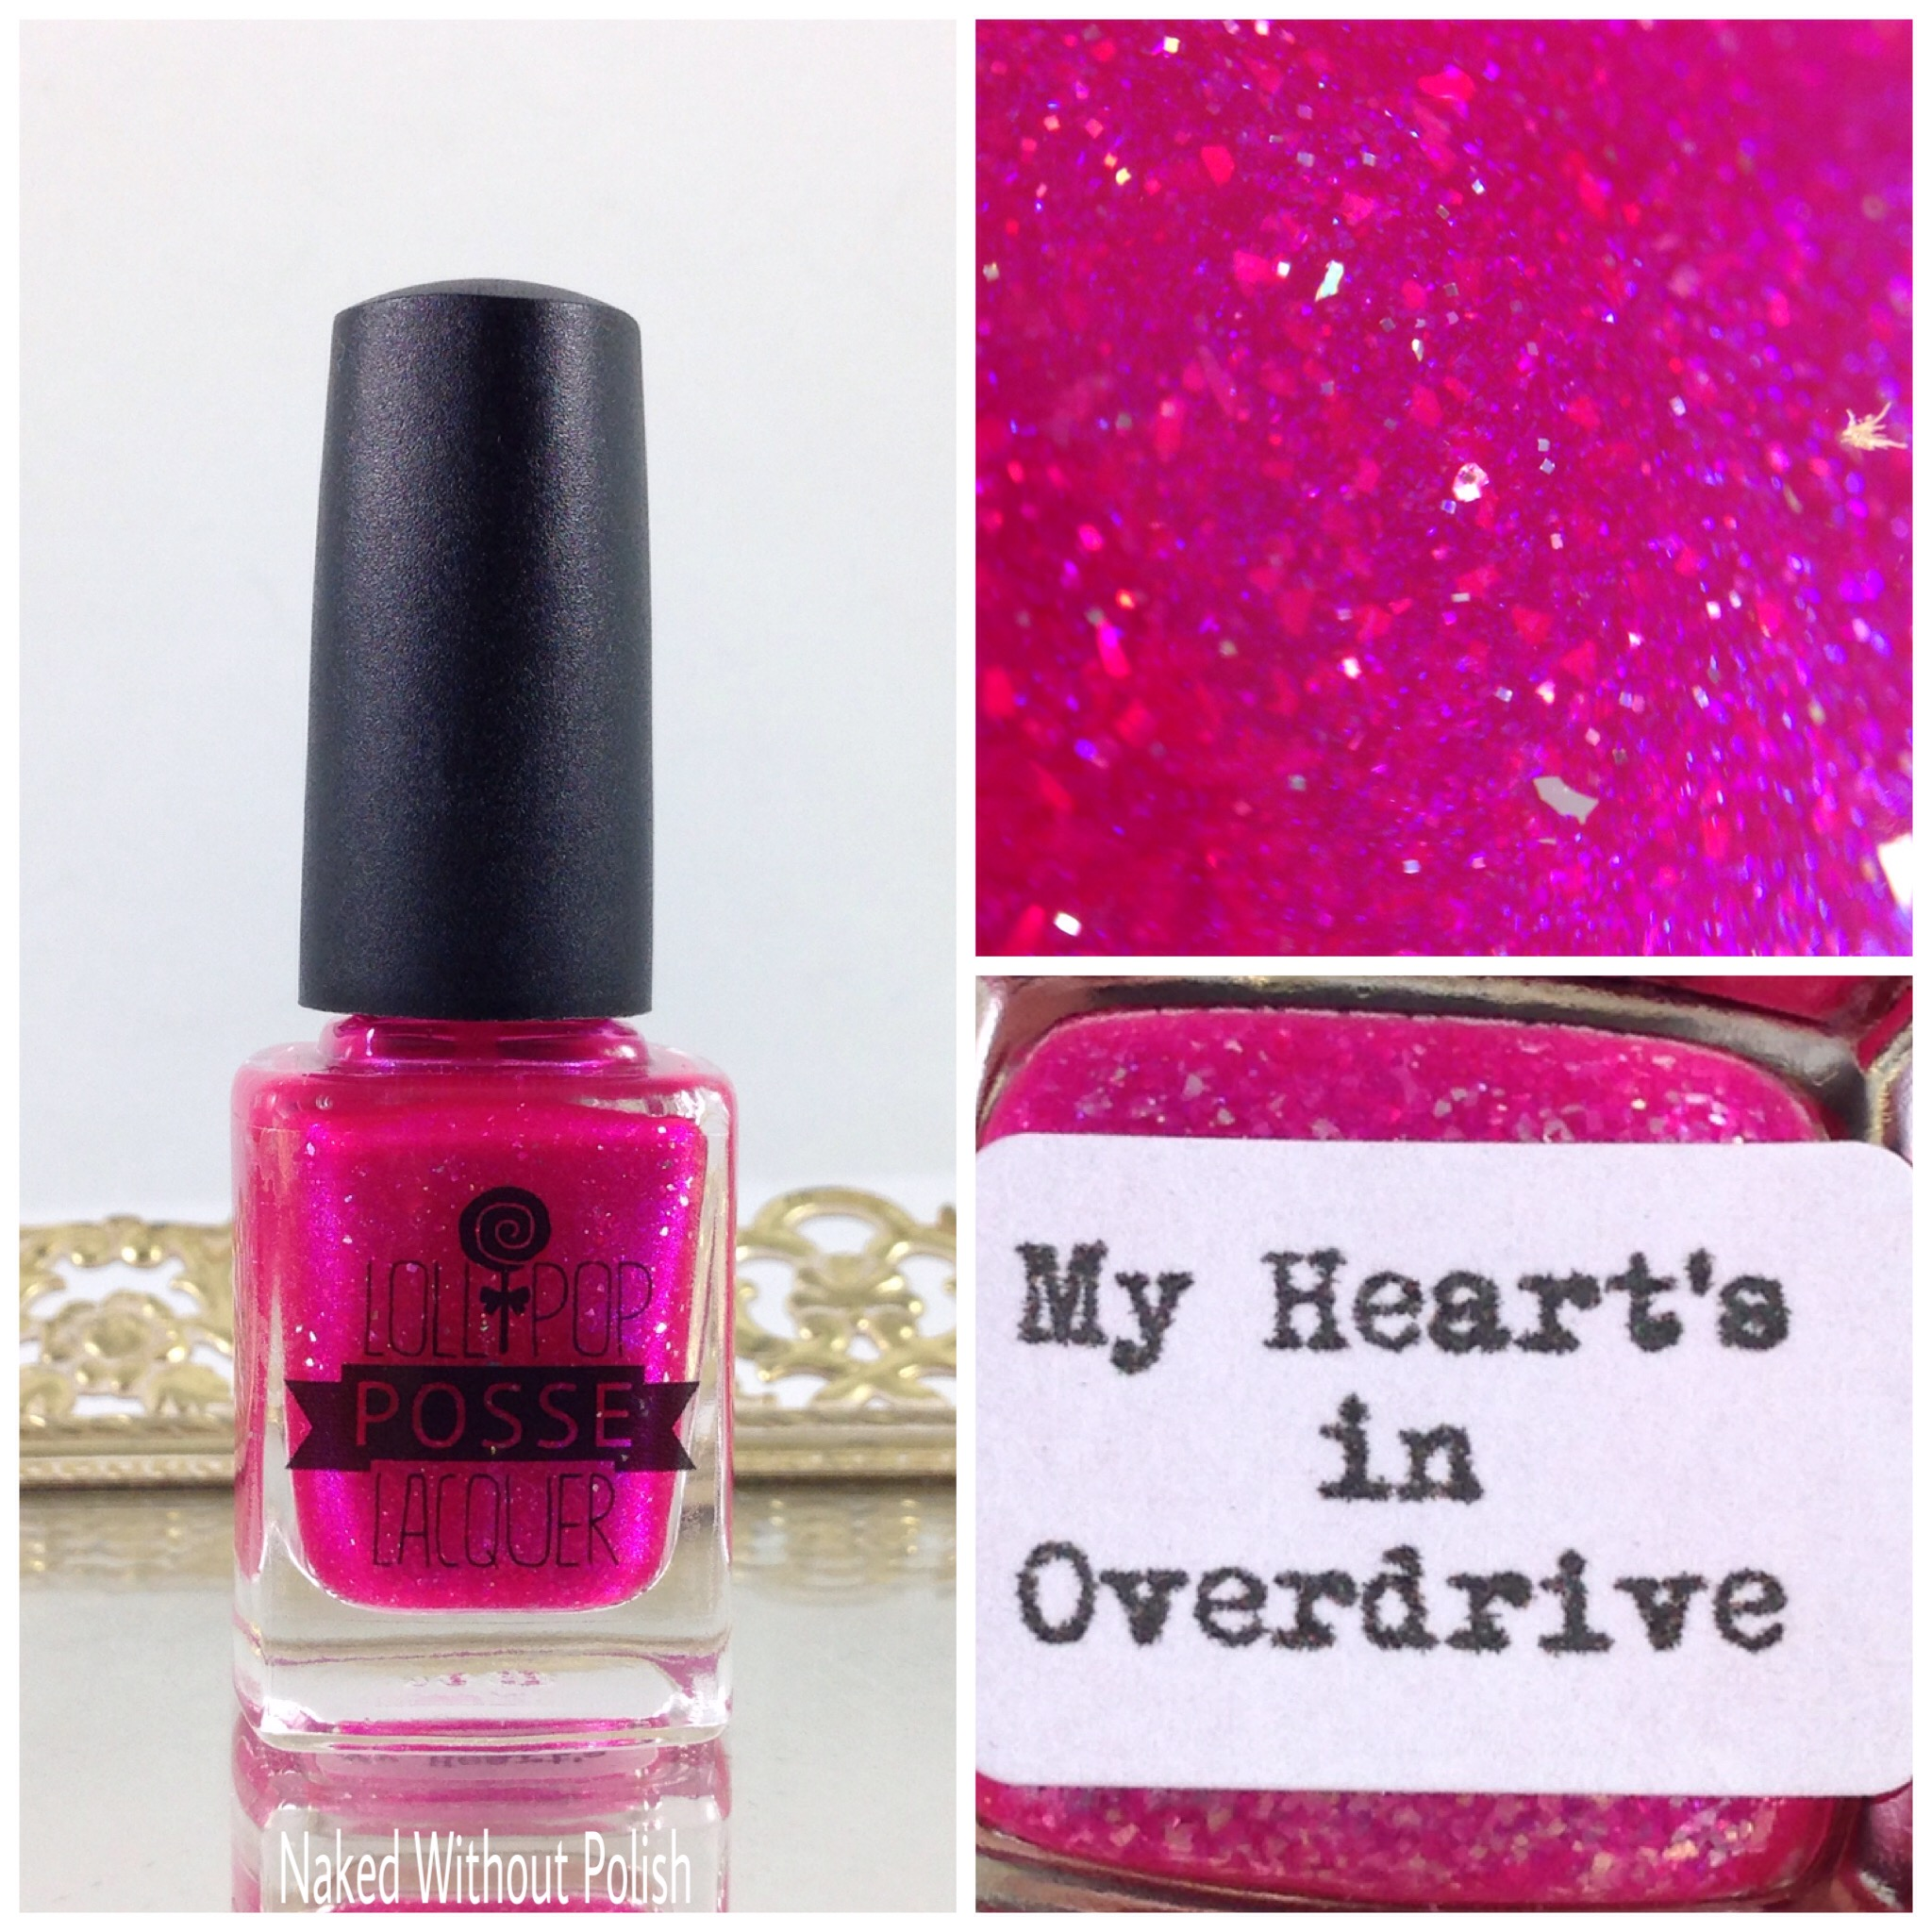 Lollipop-Posse-Lacquer-My-Hearts-in-Overdrive-1